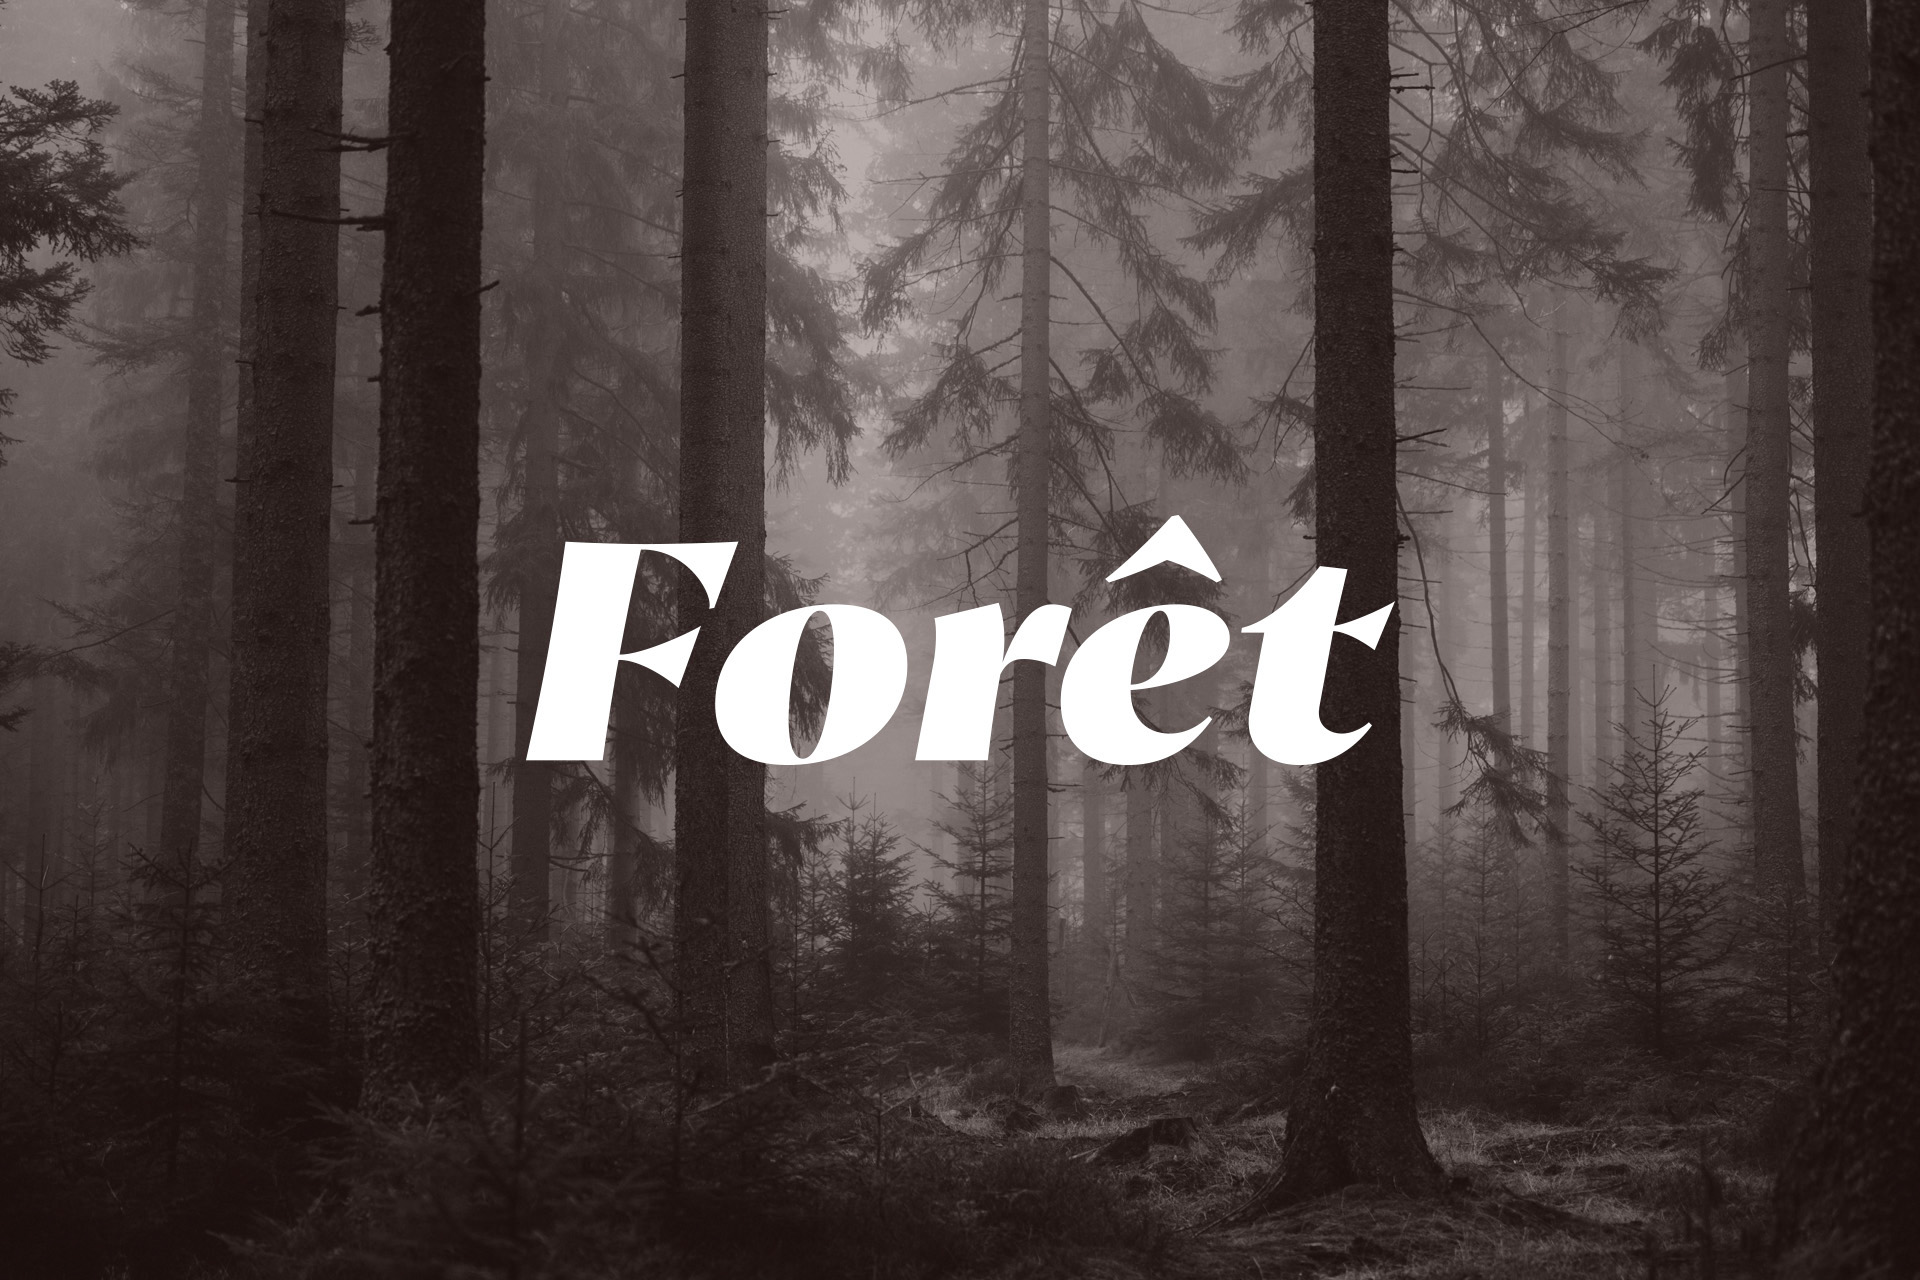 foret_2